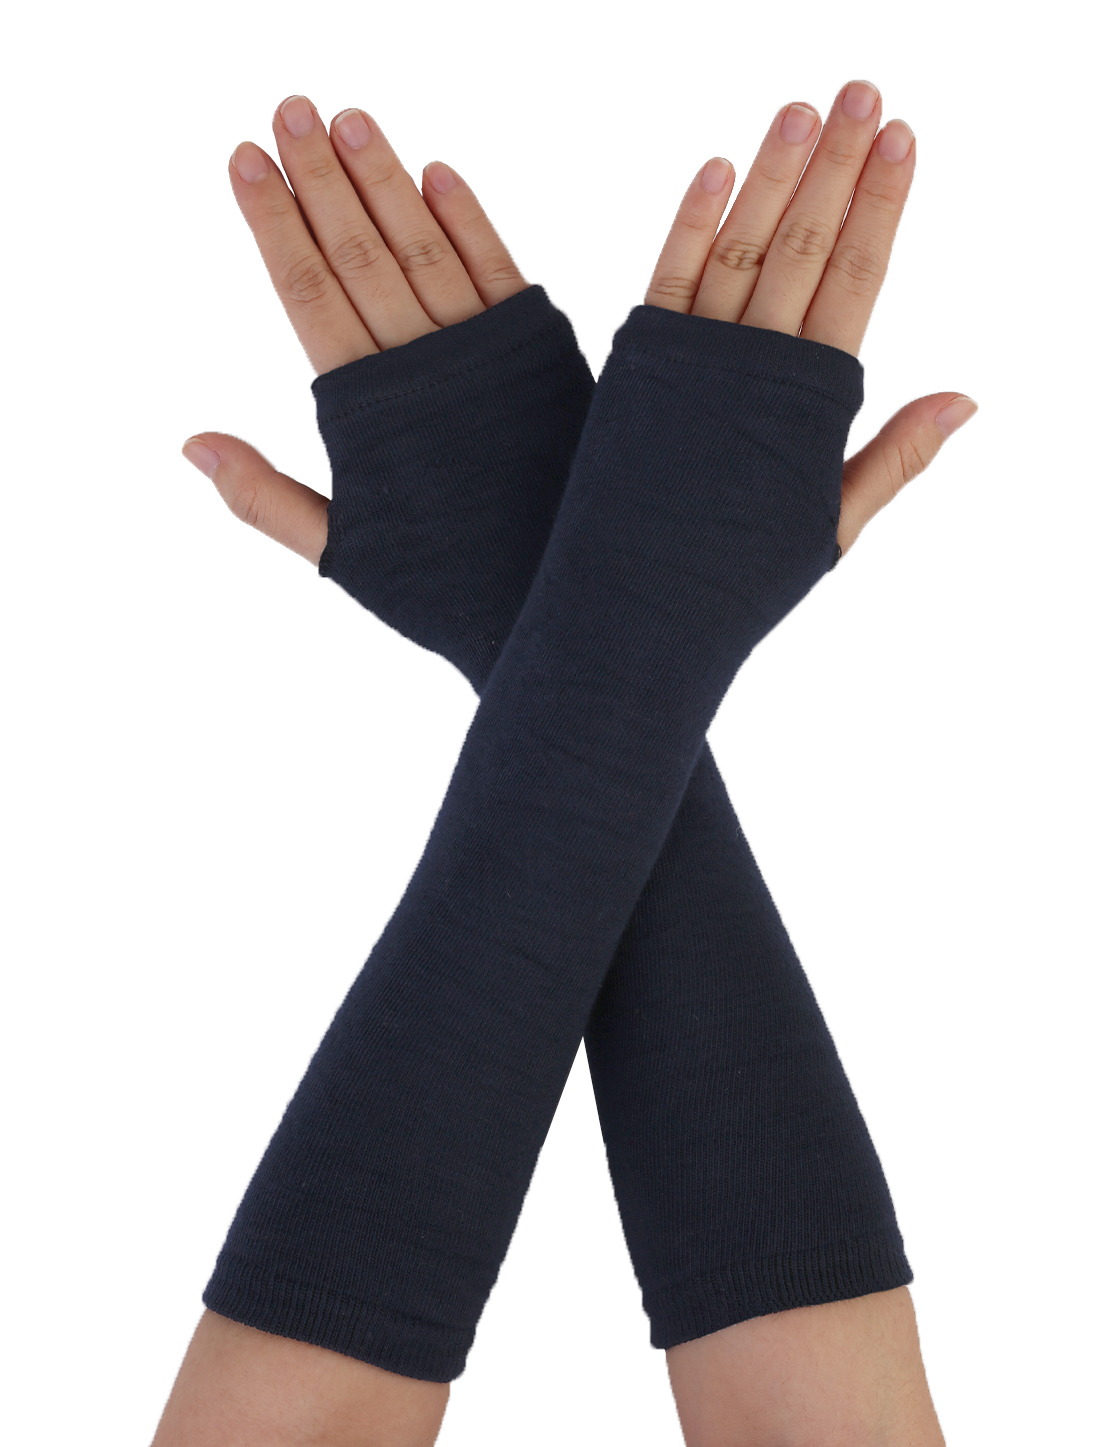 Blue Knitted Fingerless Long Gloves Arm Warmers for Lady Woman